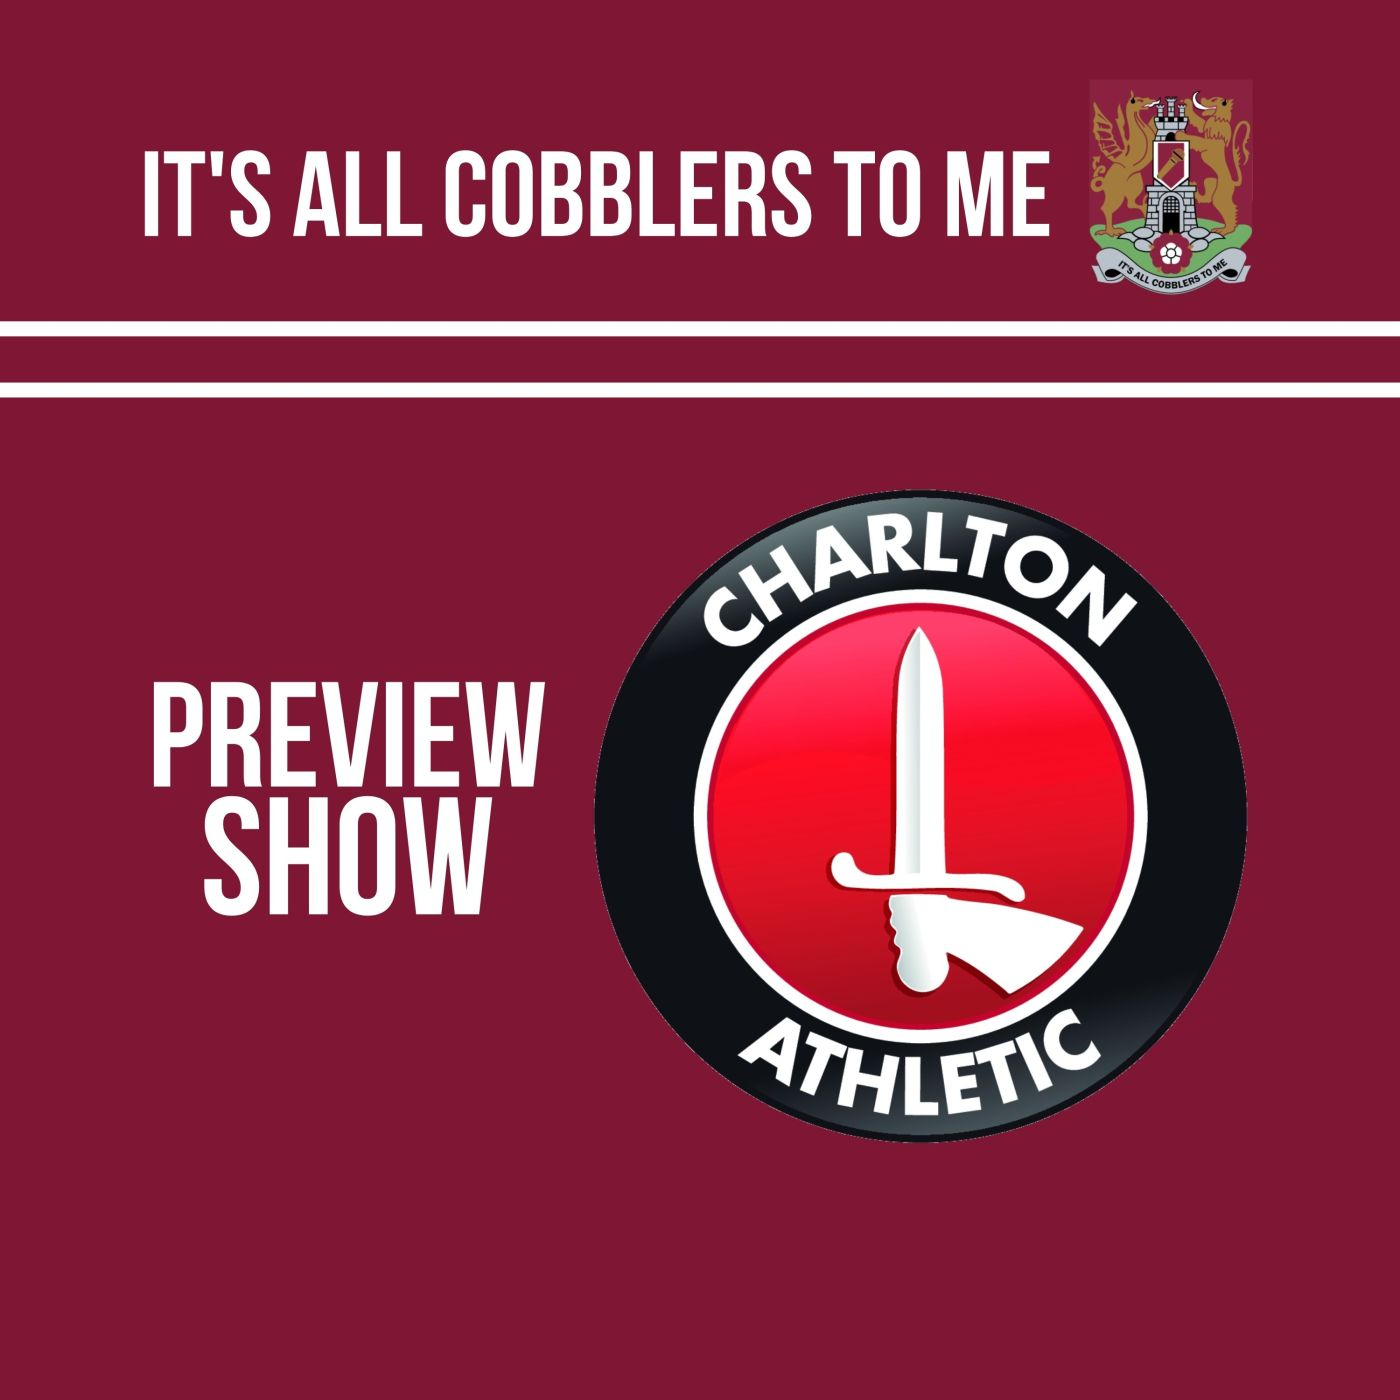 Charlton Athletic football club's badge sits to the right of the title of the show on a claret background